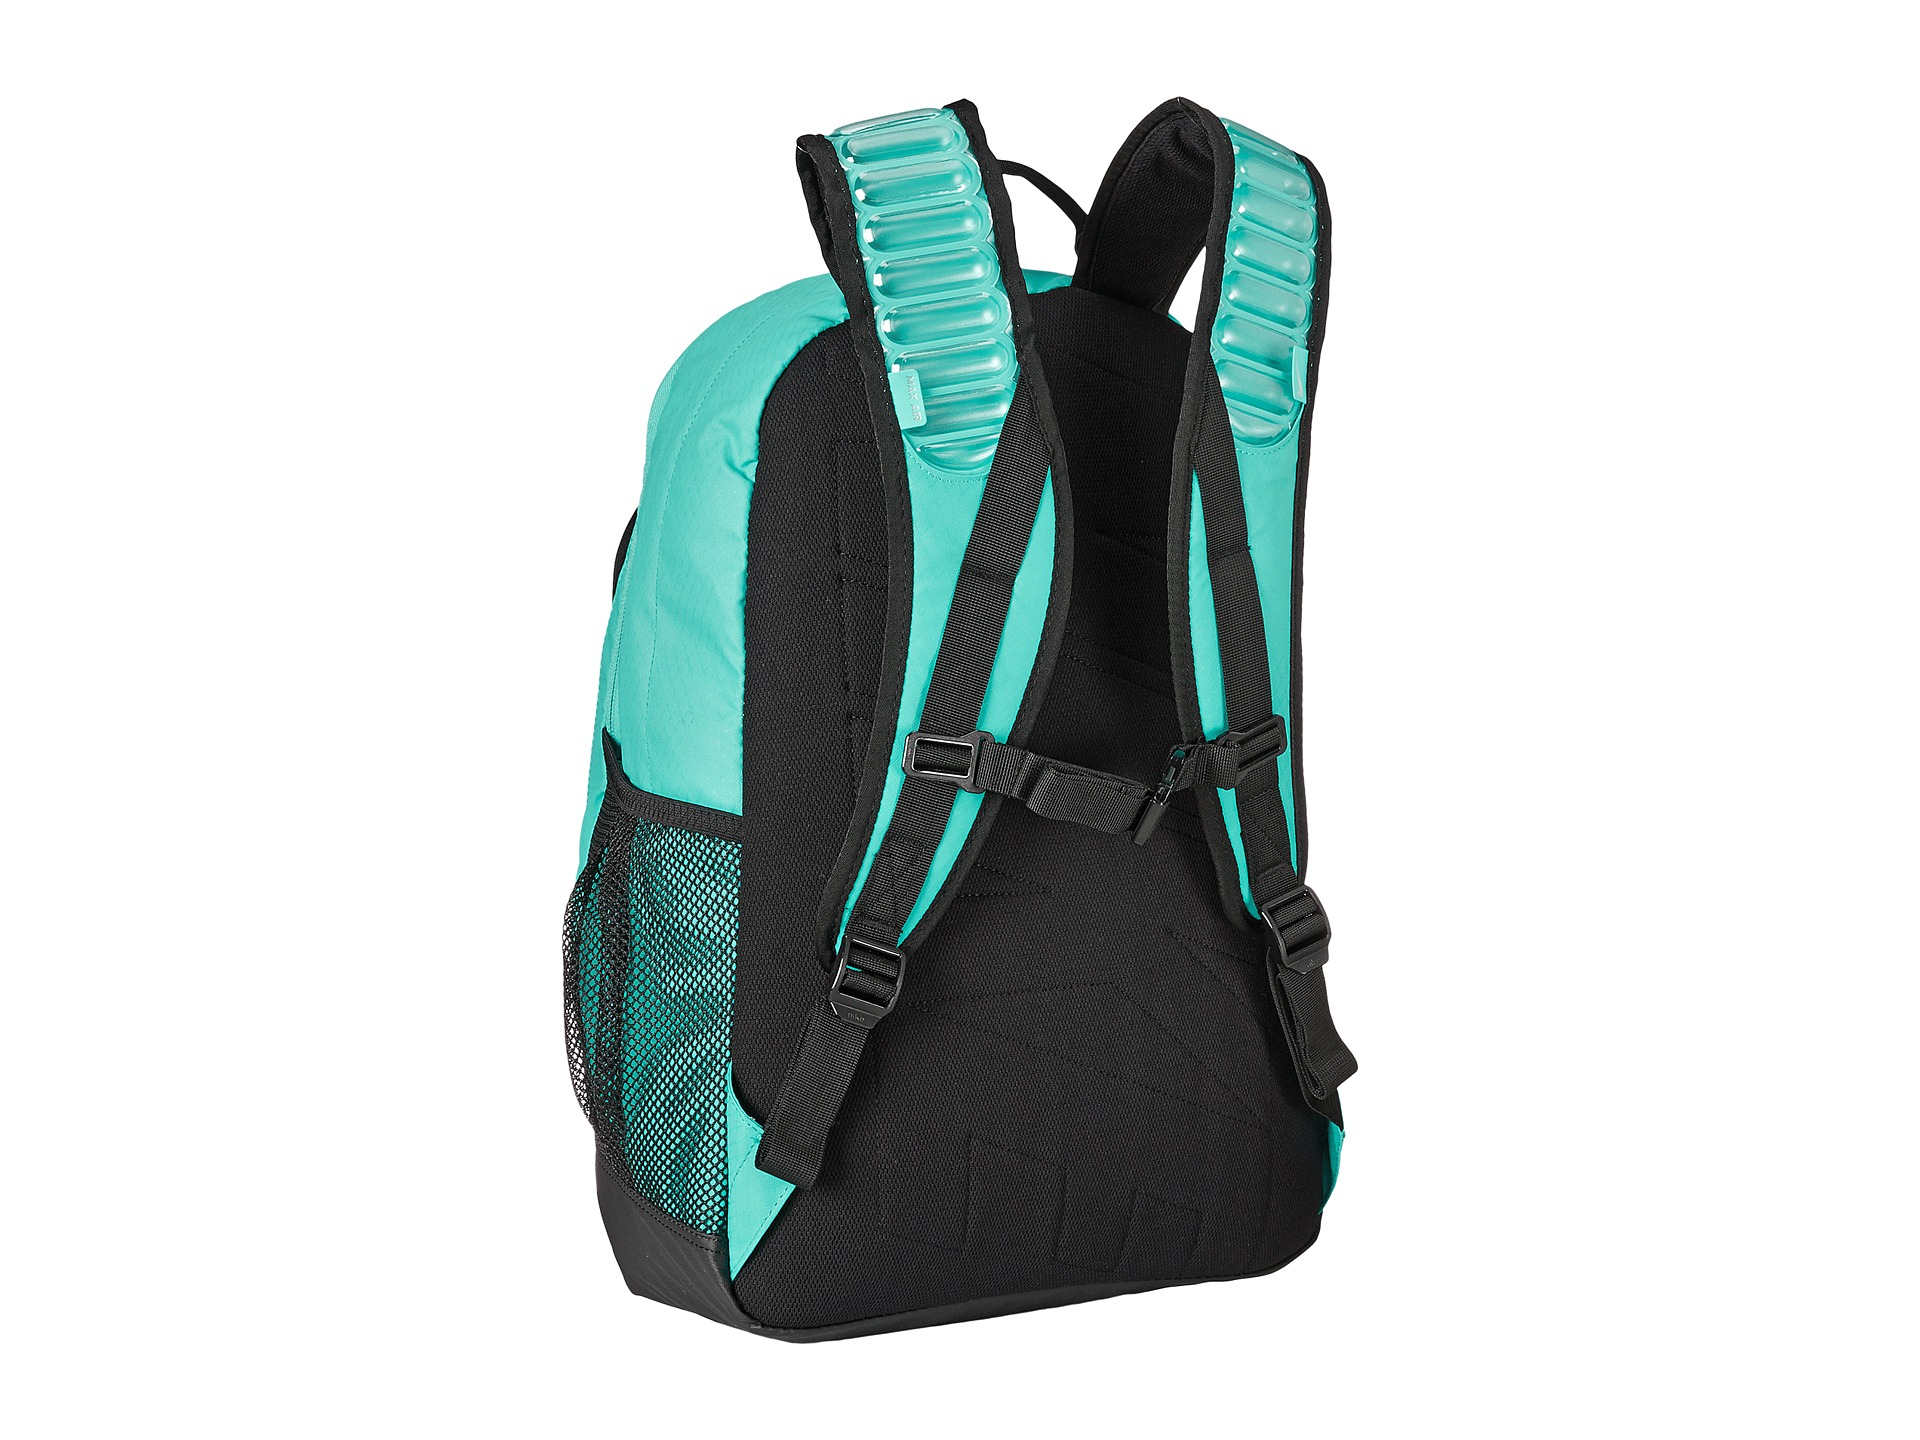 Lyst - Nike Max Air Vapor Backpack in Blue 633c86141e